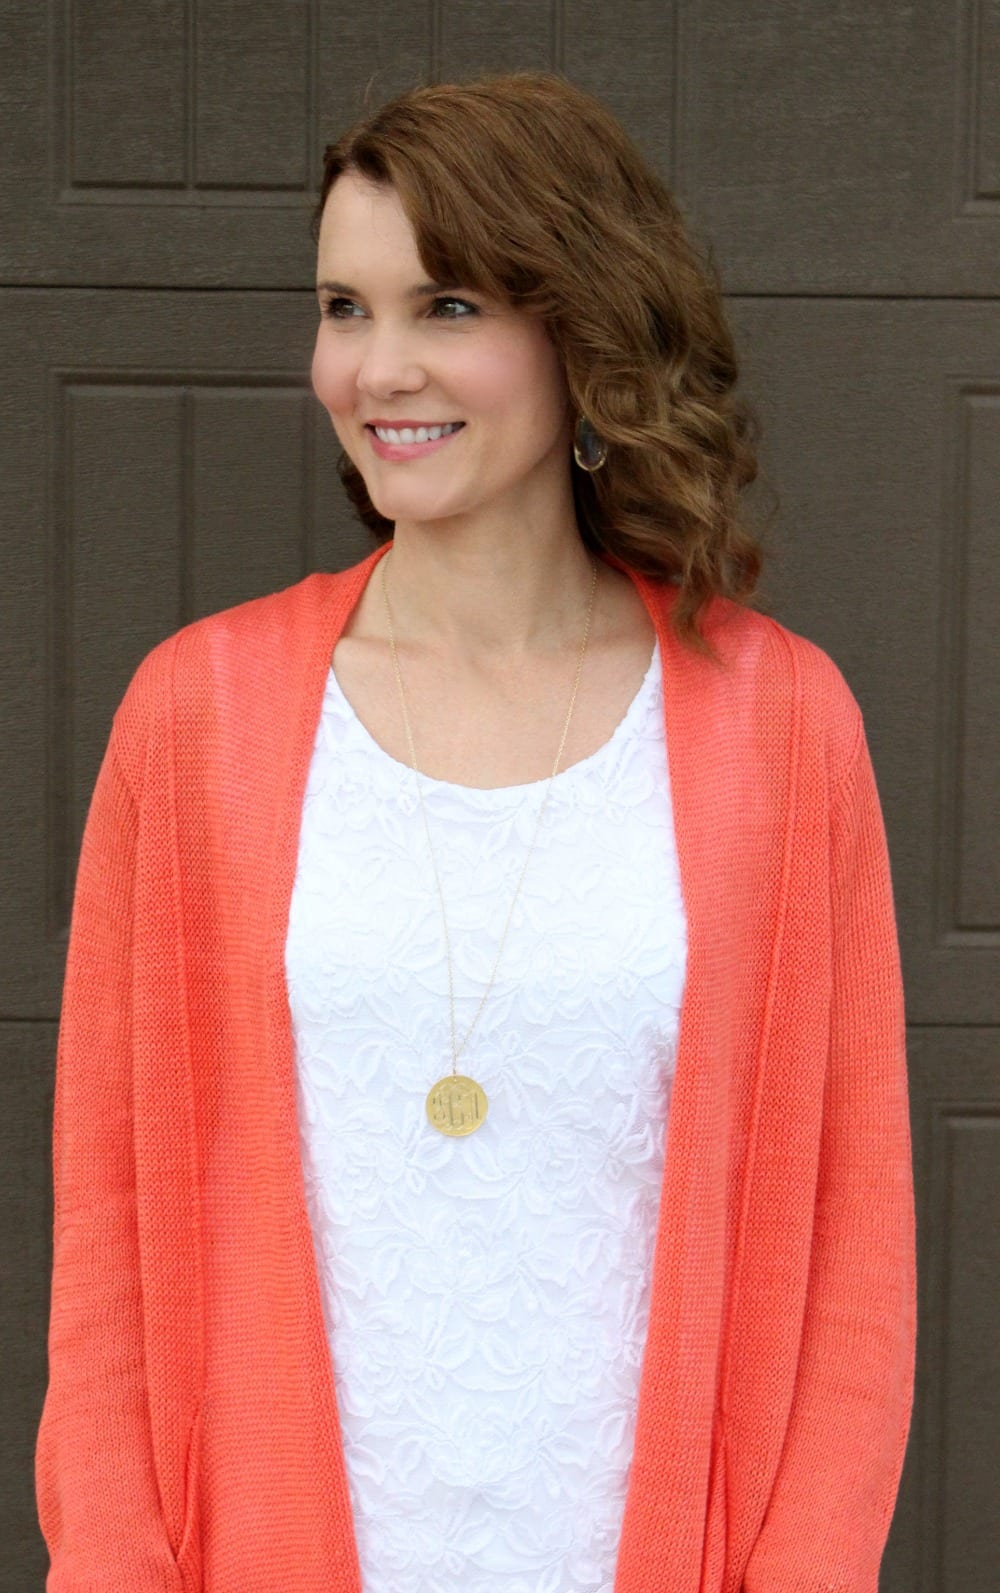 Spring outfit idea - nude patent wedges, white denim, white lace top and a coral cardigan.